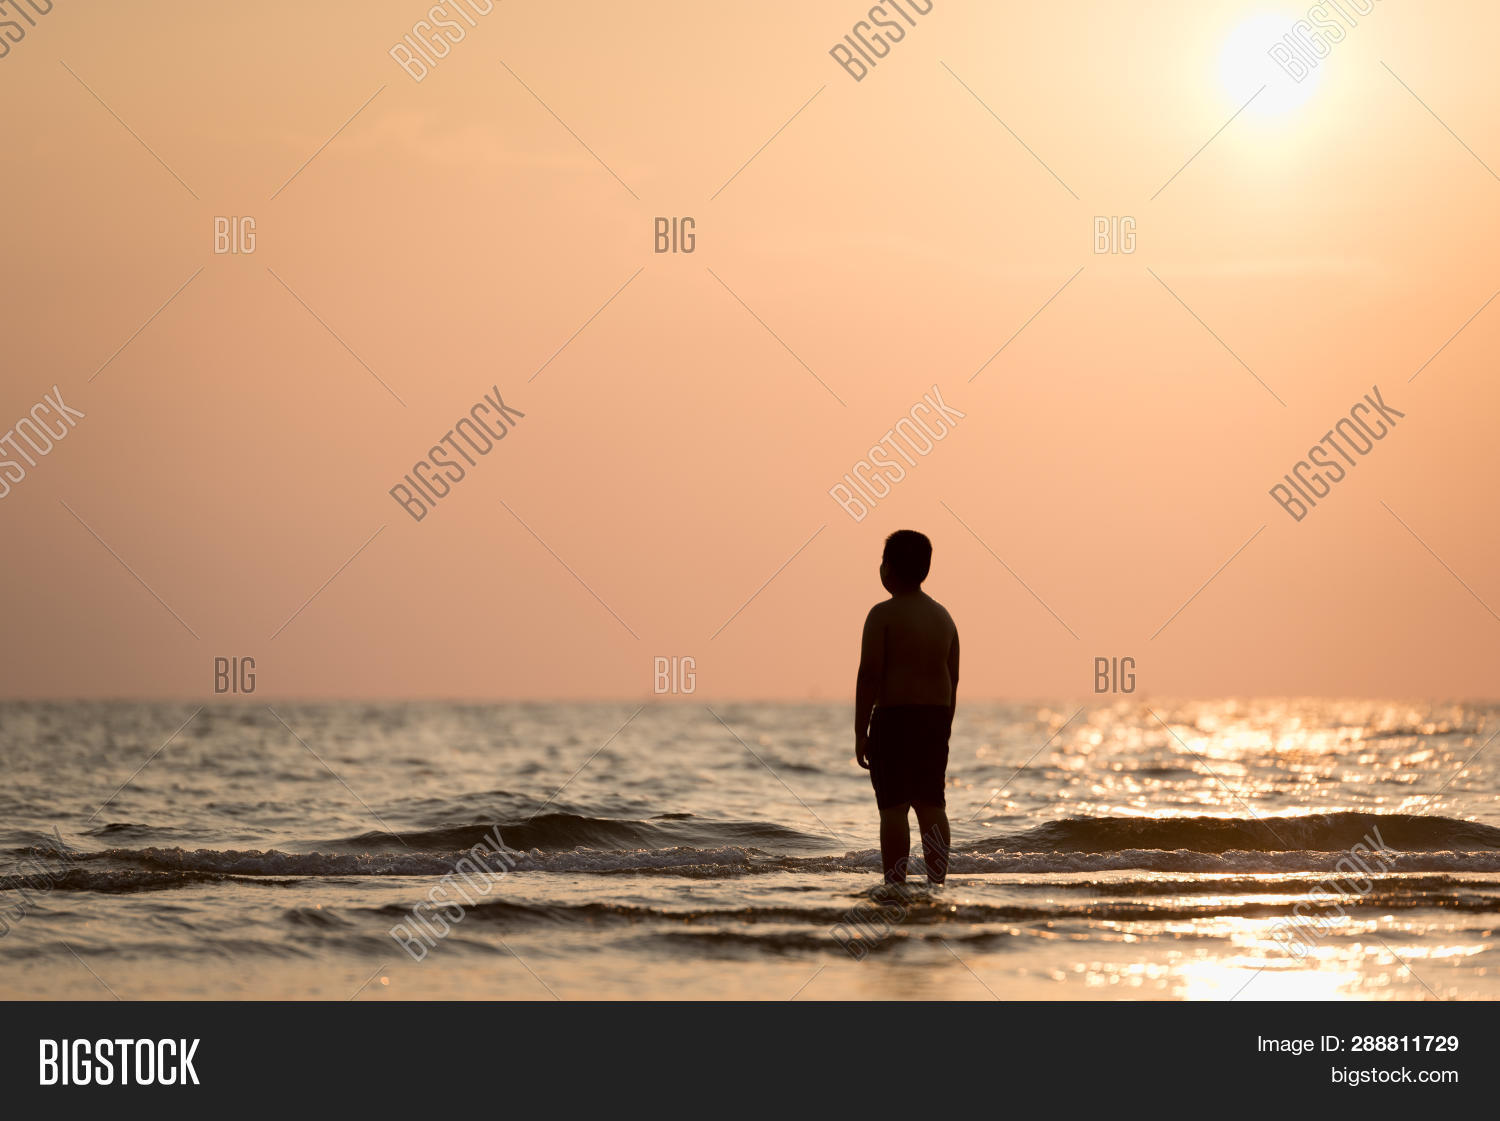 Silhouette of a lonely boy standing alone on the beach at sunset concept of lonely